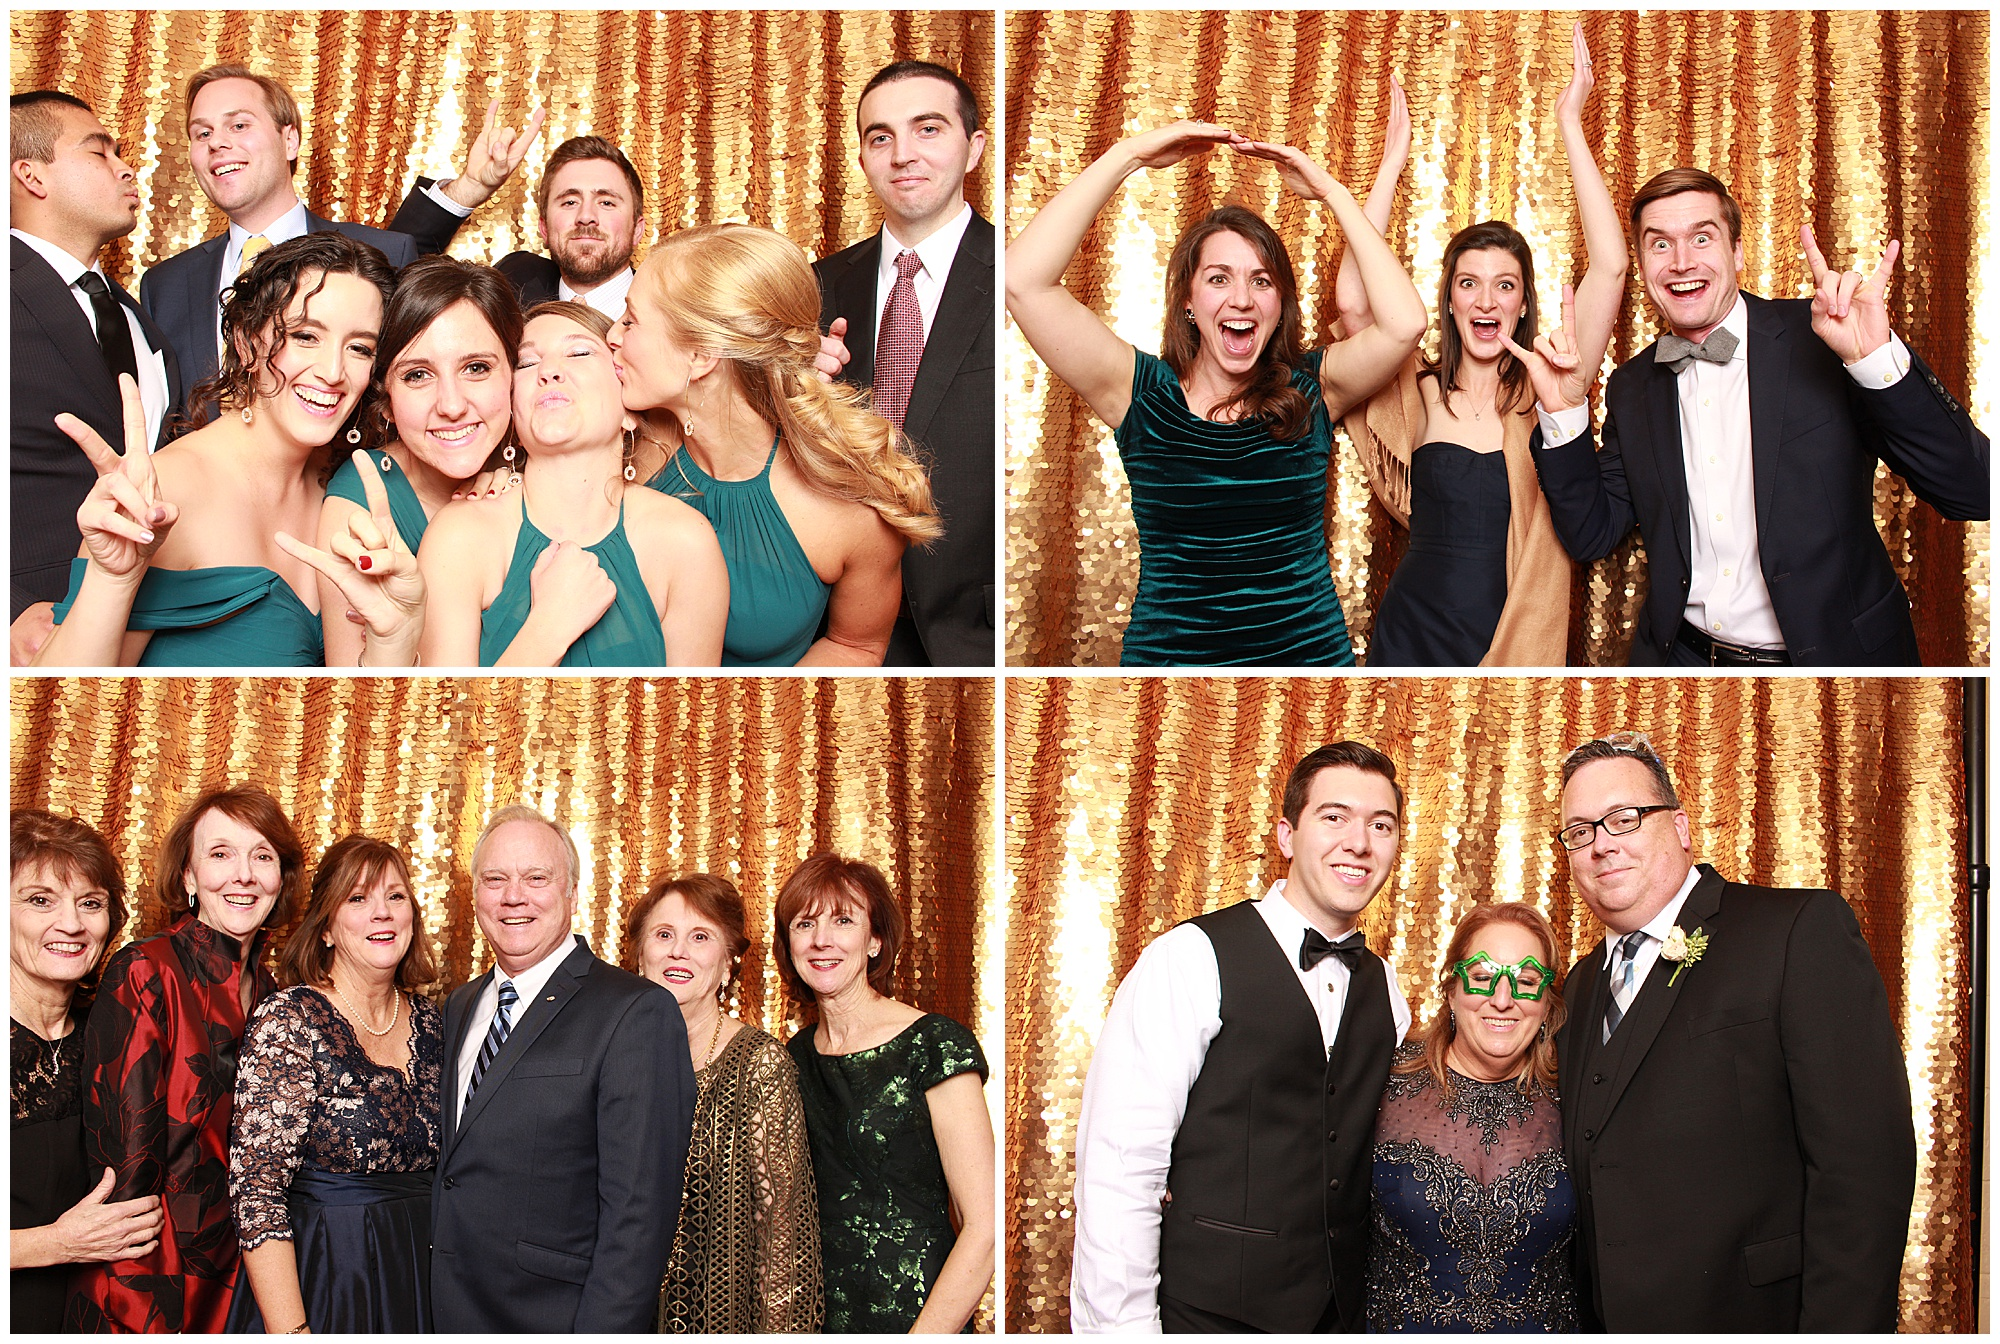 austin wedding photo booth_0069.jpg